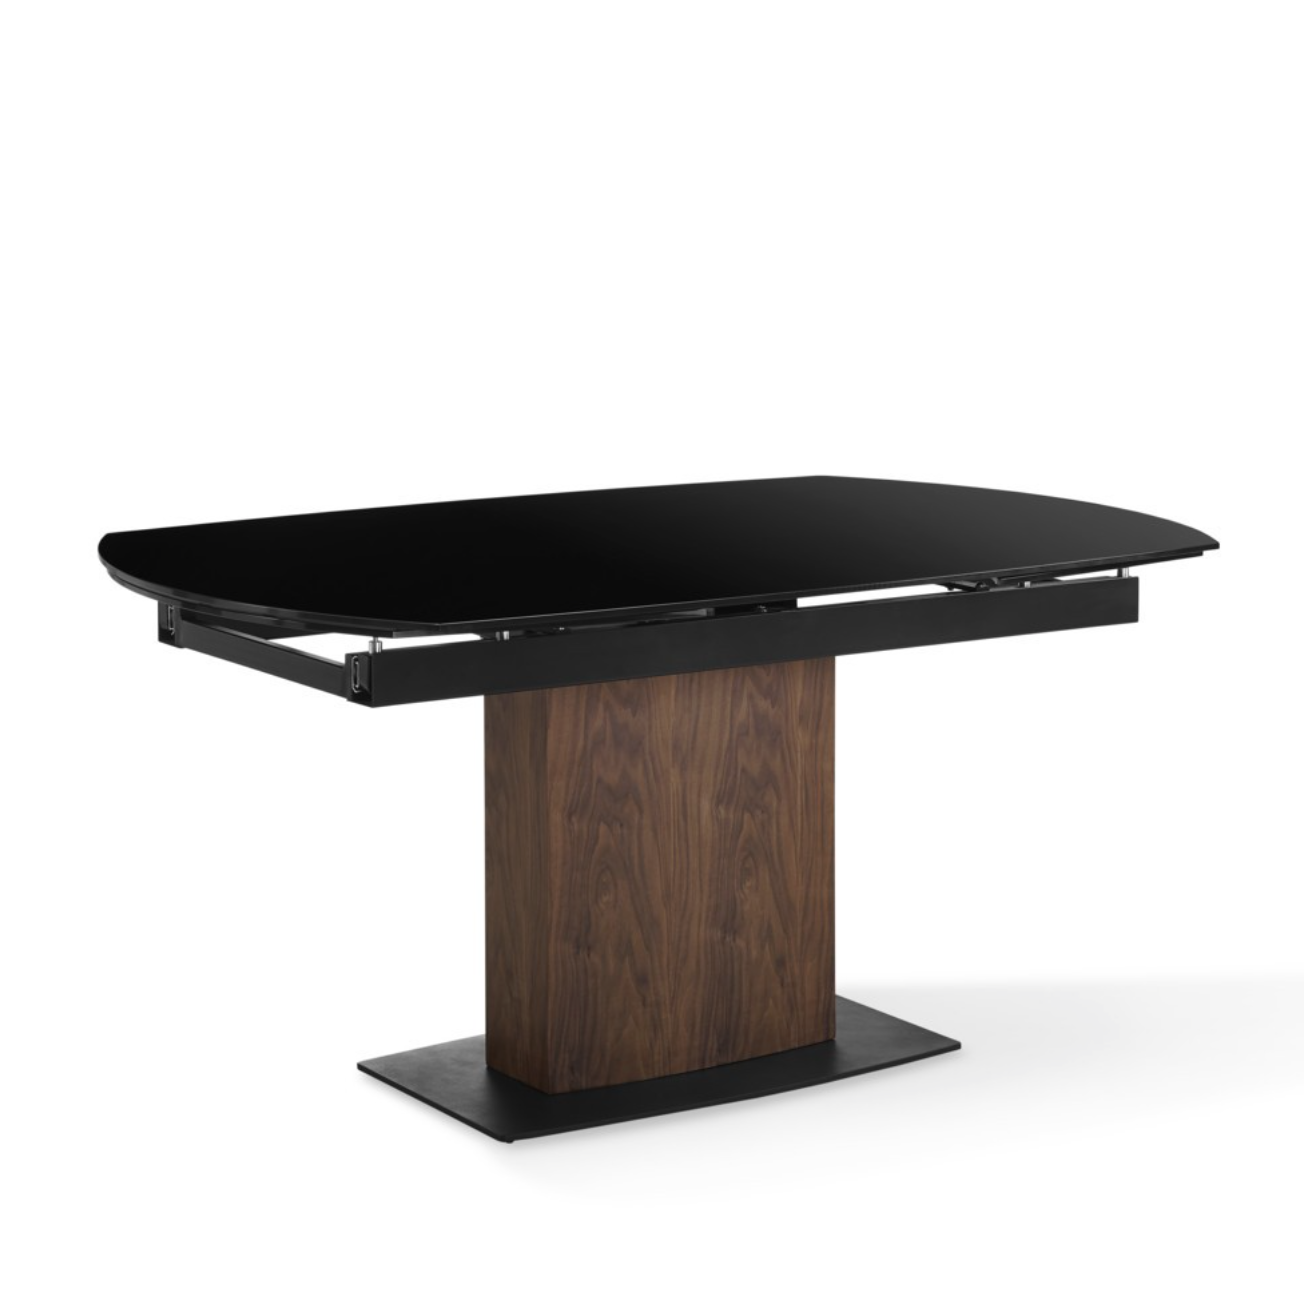 Modern Dining Room Table Png parker tablecreative, creative furniture usa, creative dining